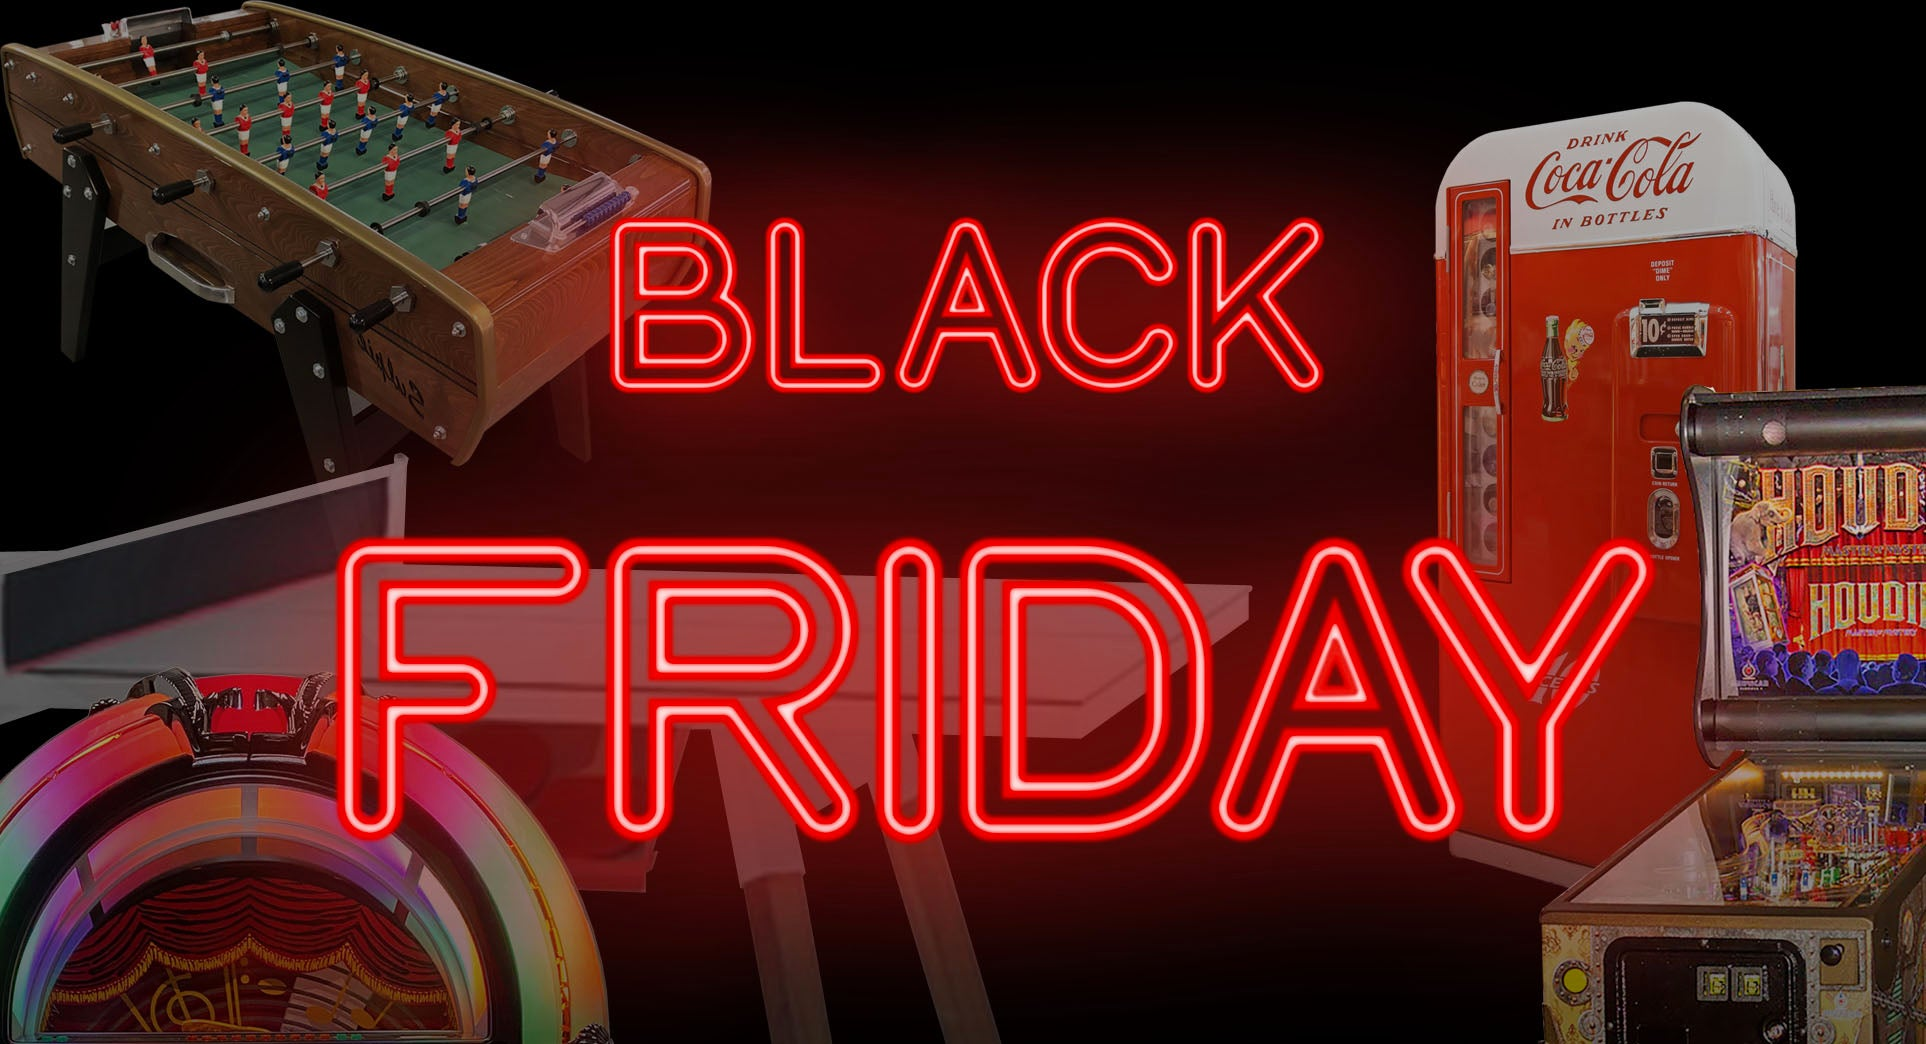 Don't miss out on these amazing Black Friday deals!